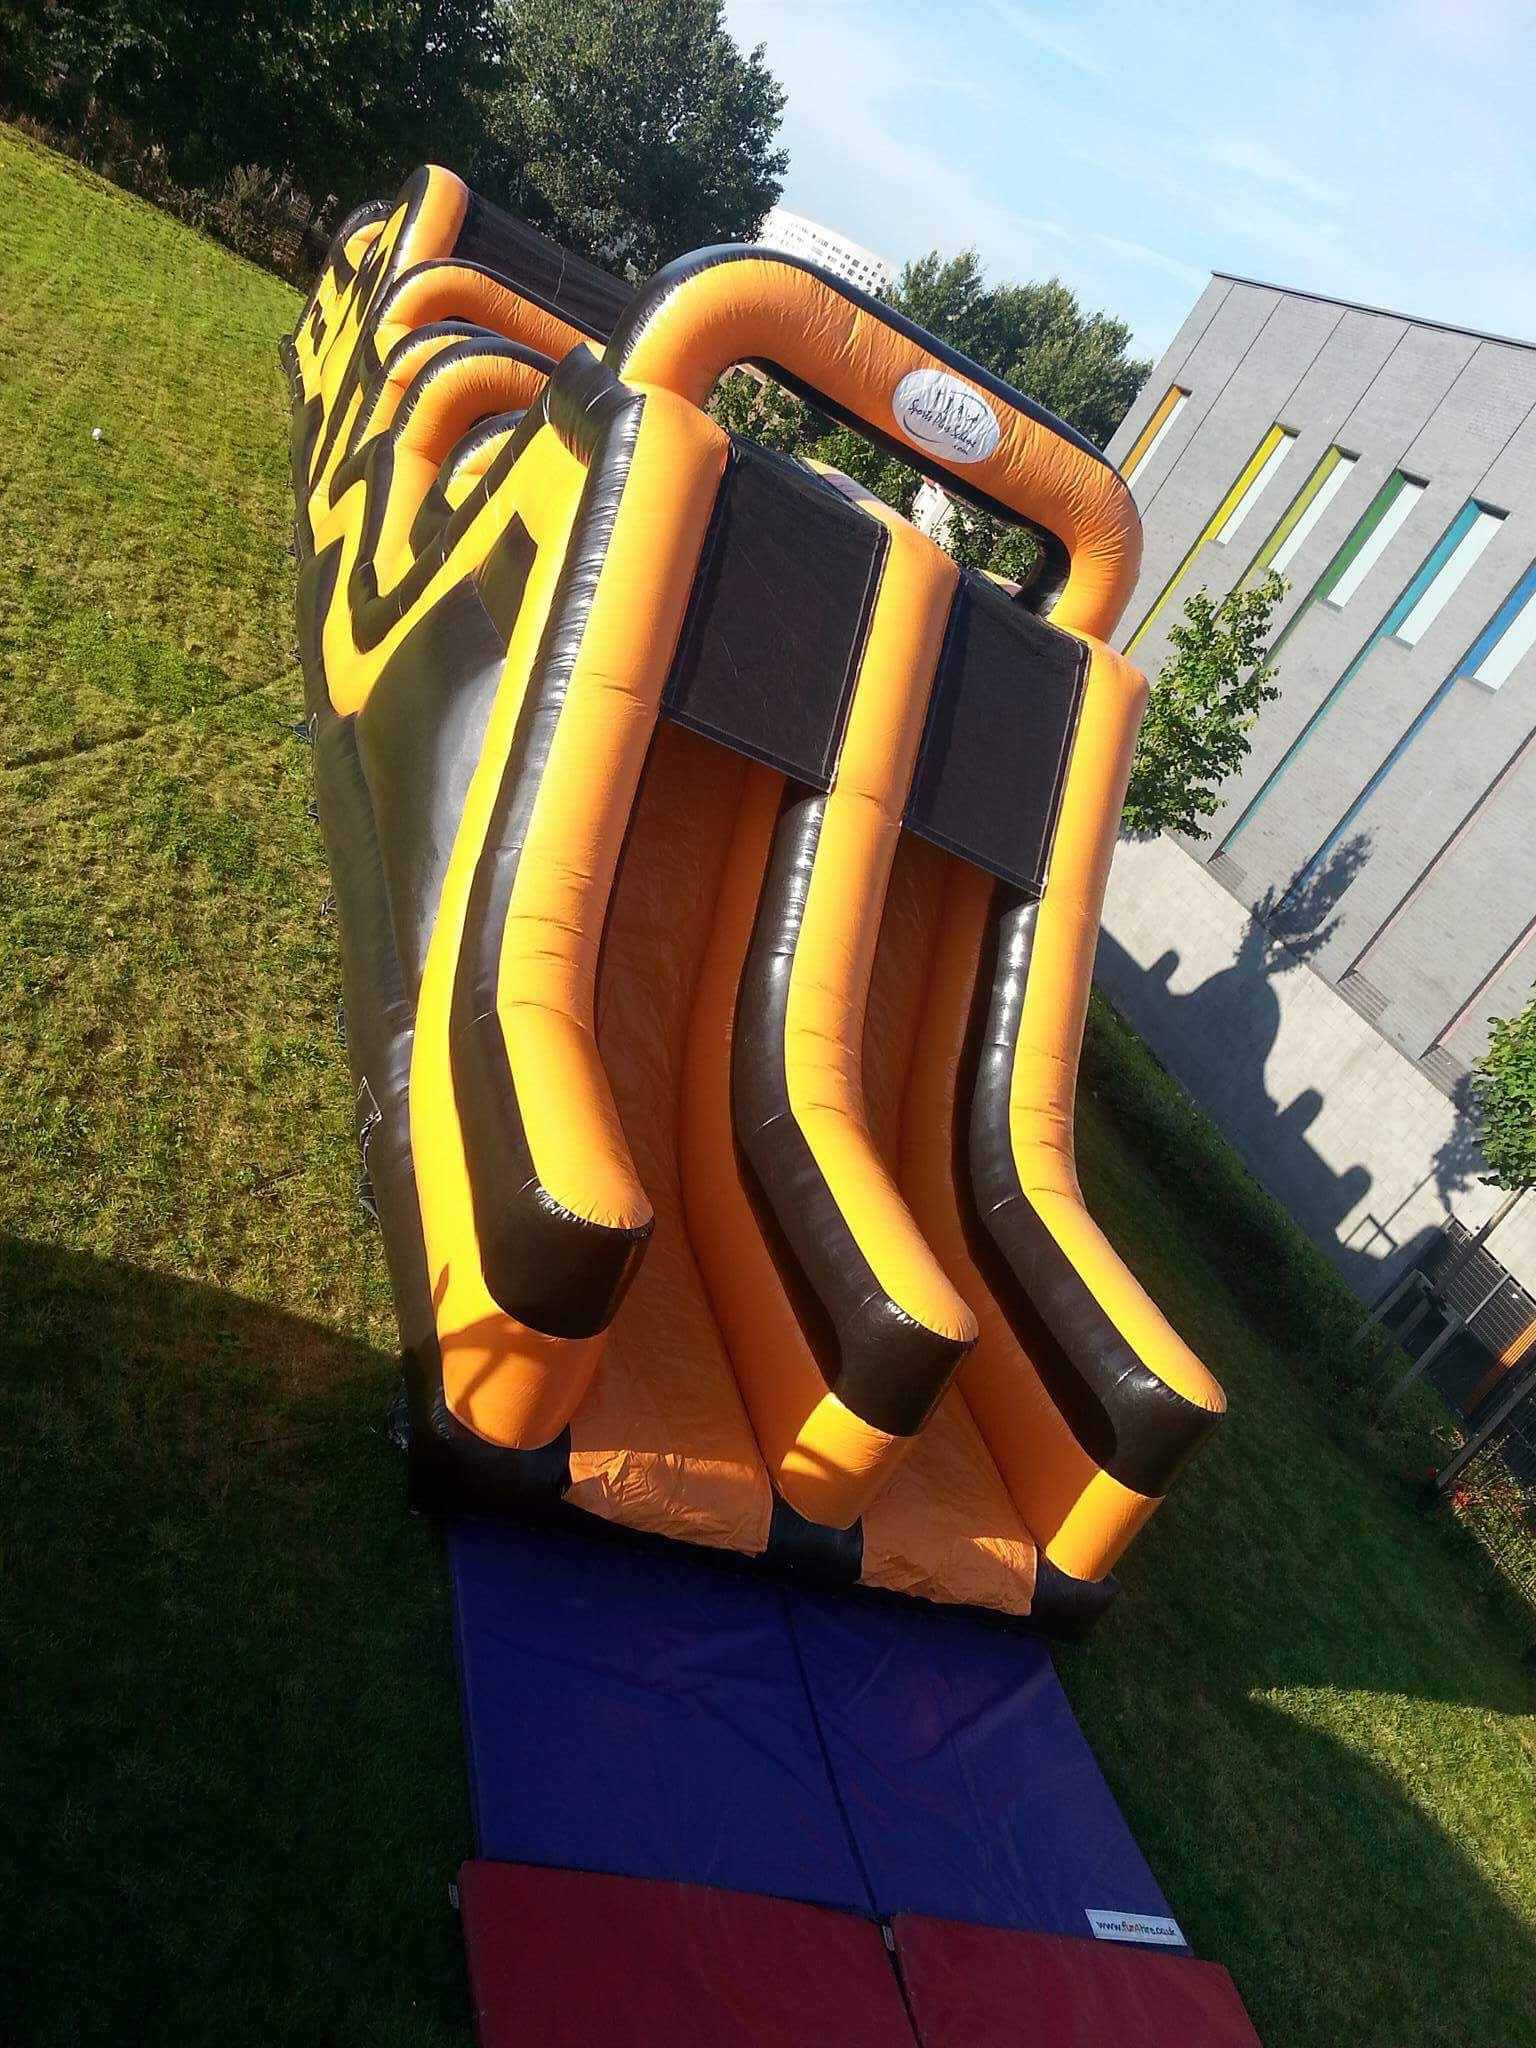 Have inflatable obstacle courses for adults authoritative answer